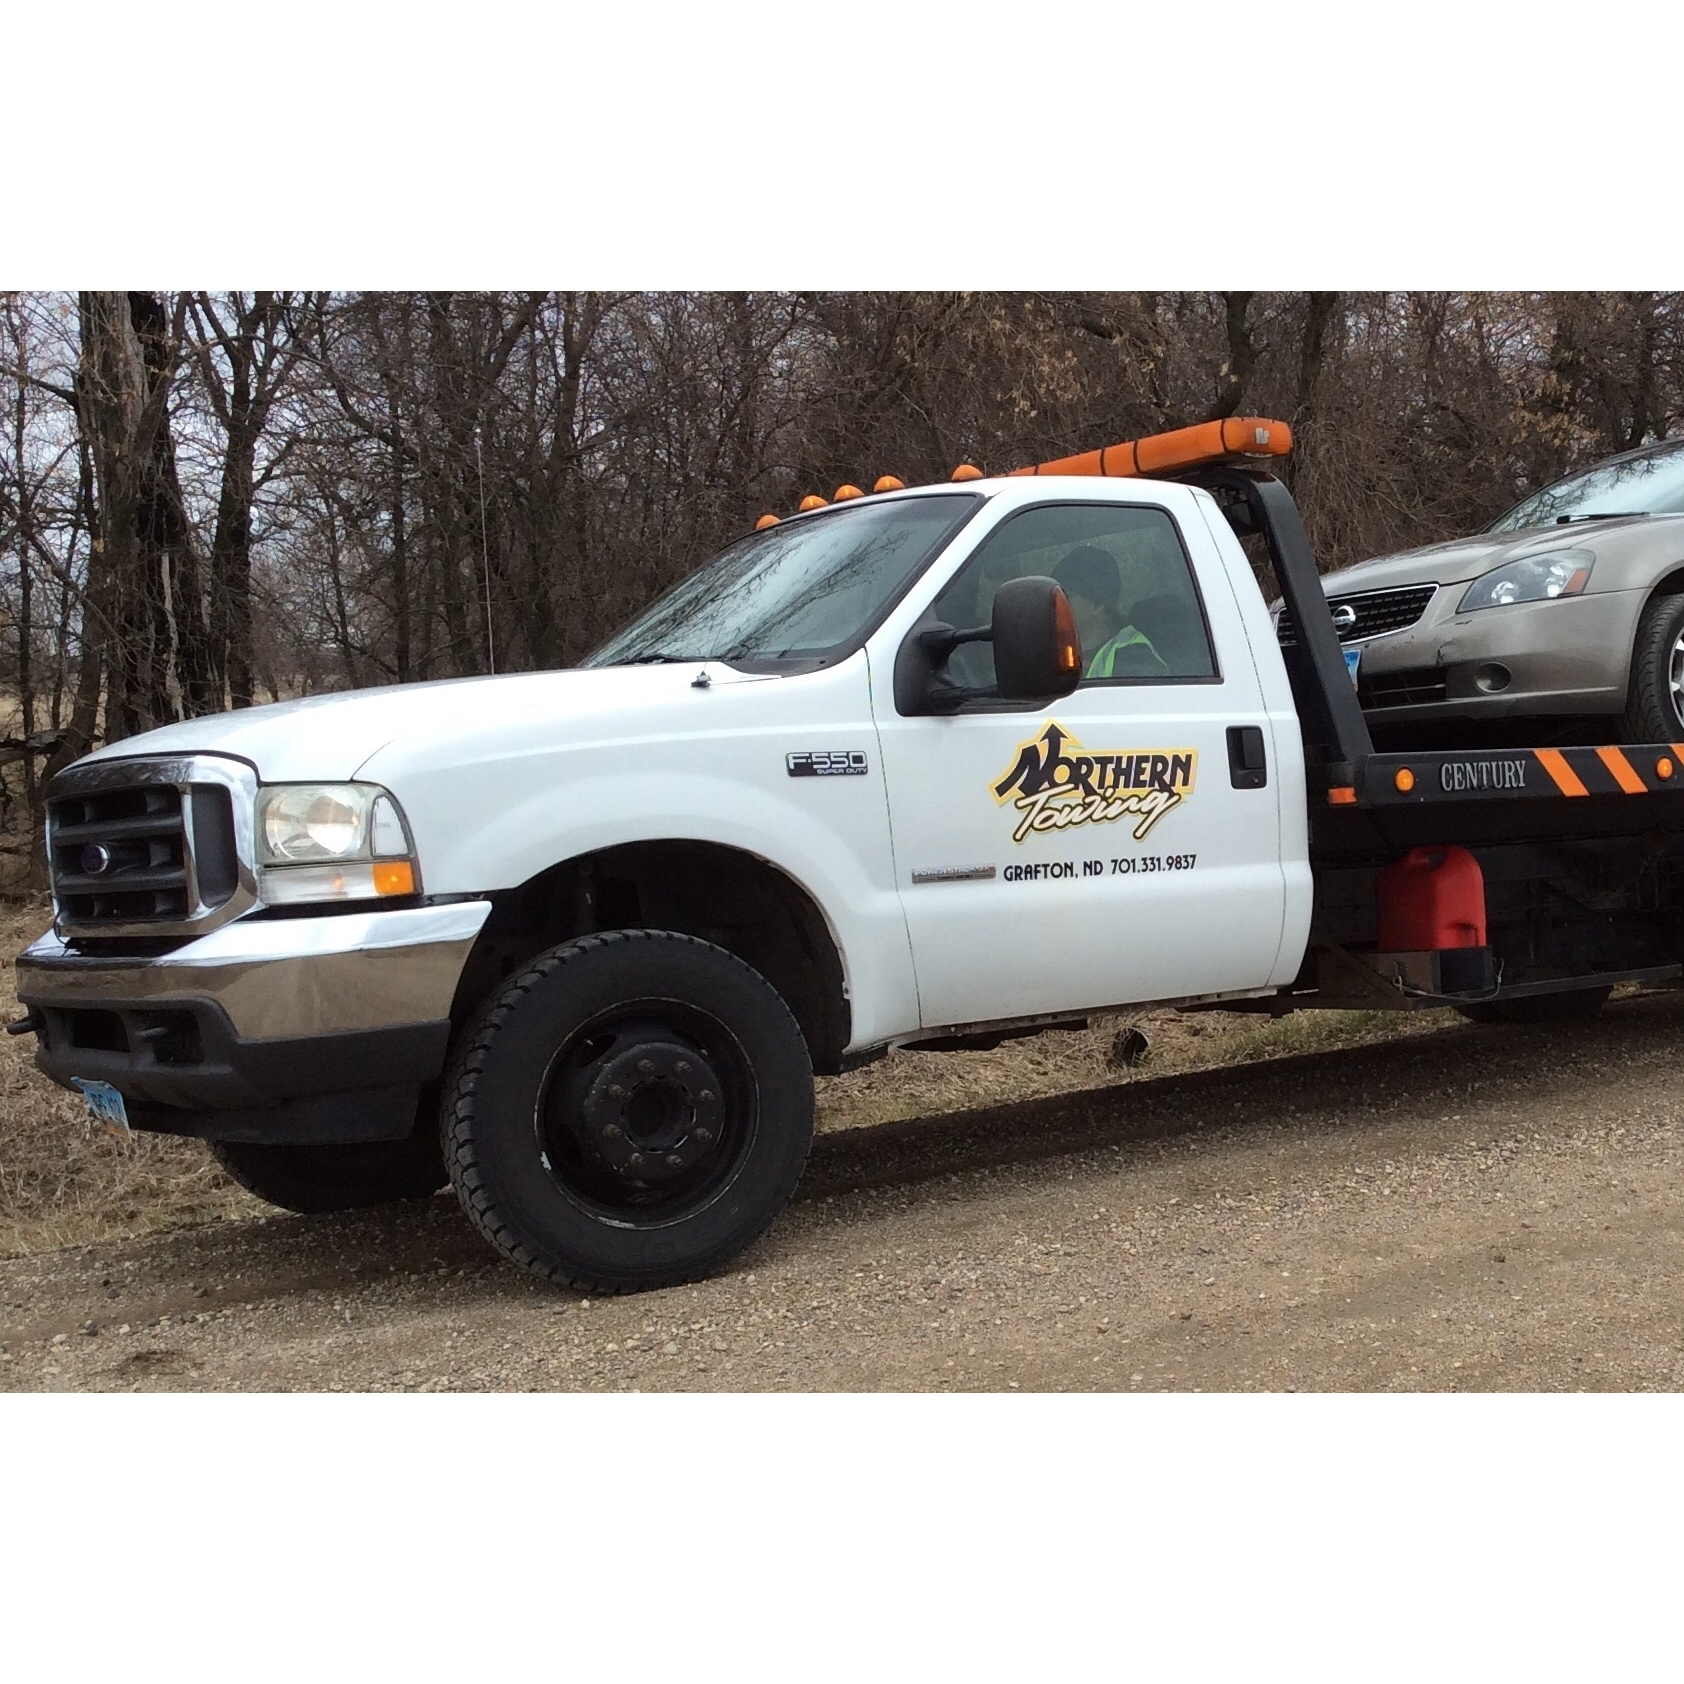 Northern Towing - Grafton, ND - Auto Towing & Wrecking